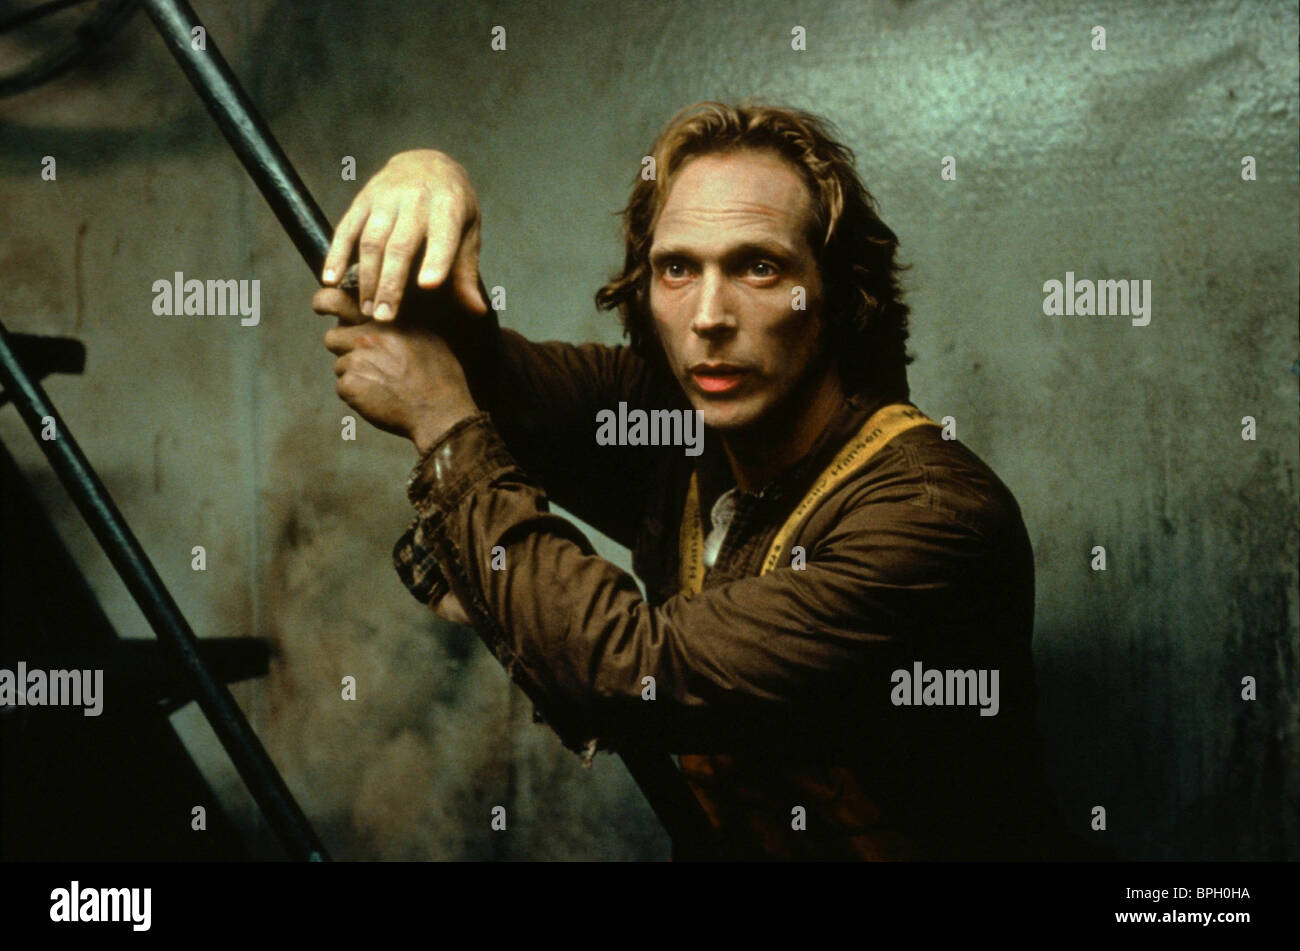 Wolfgang Petersen The Perfect Storm 2000 Stock Photo Alamy